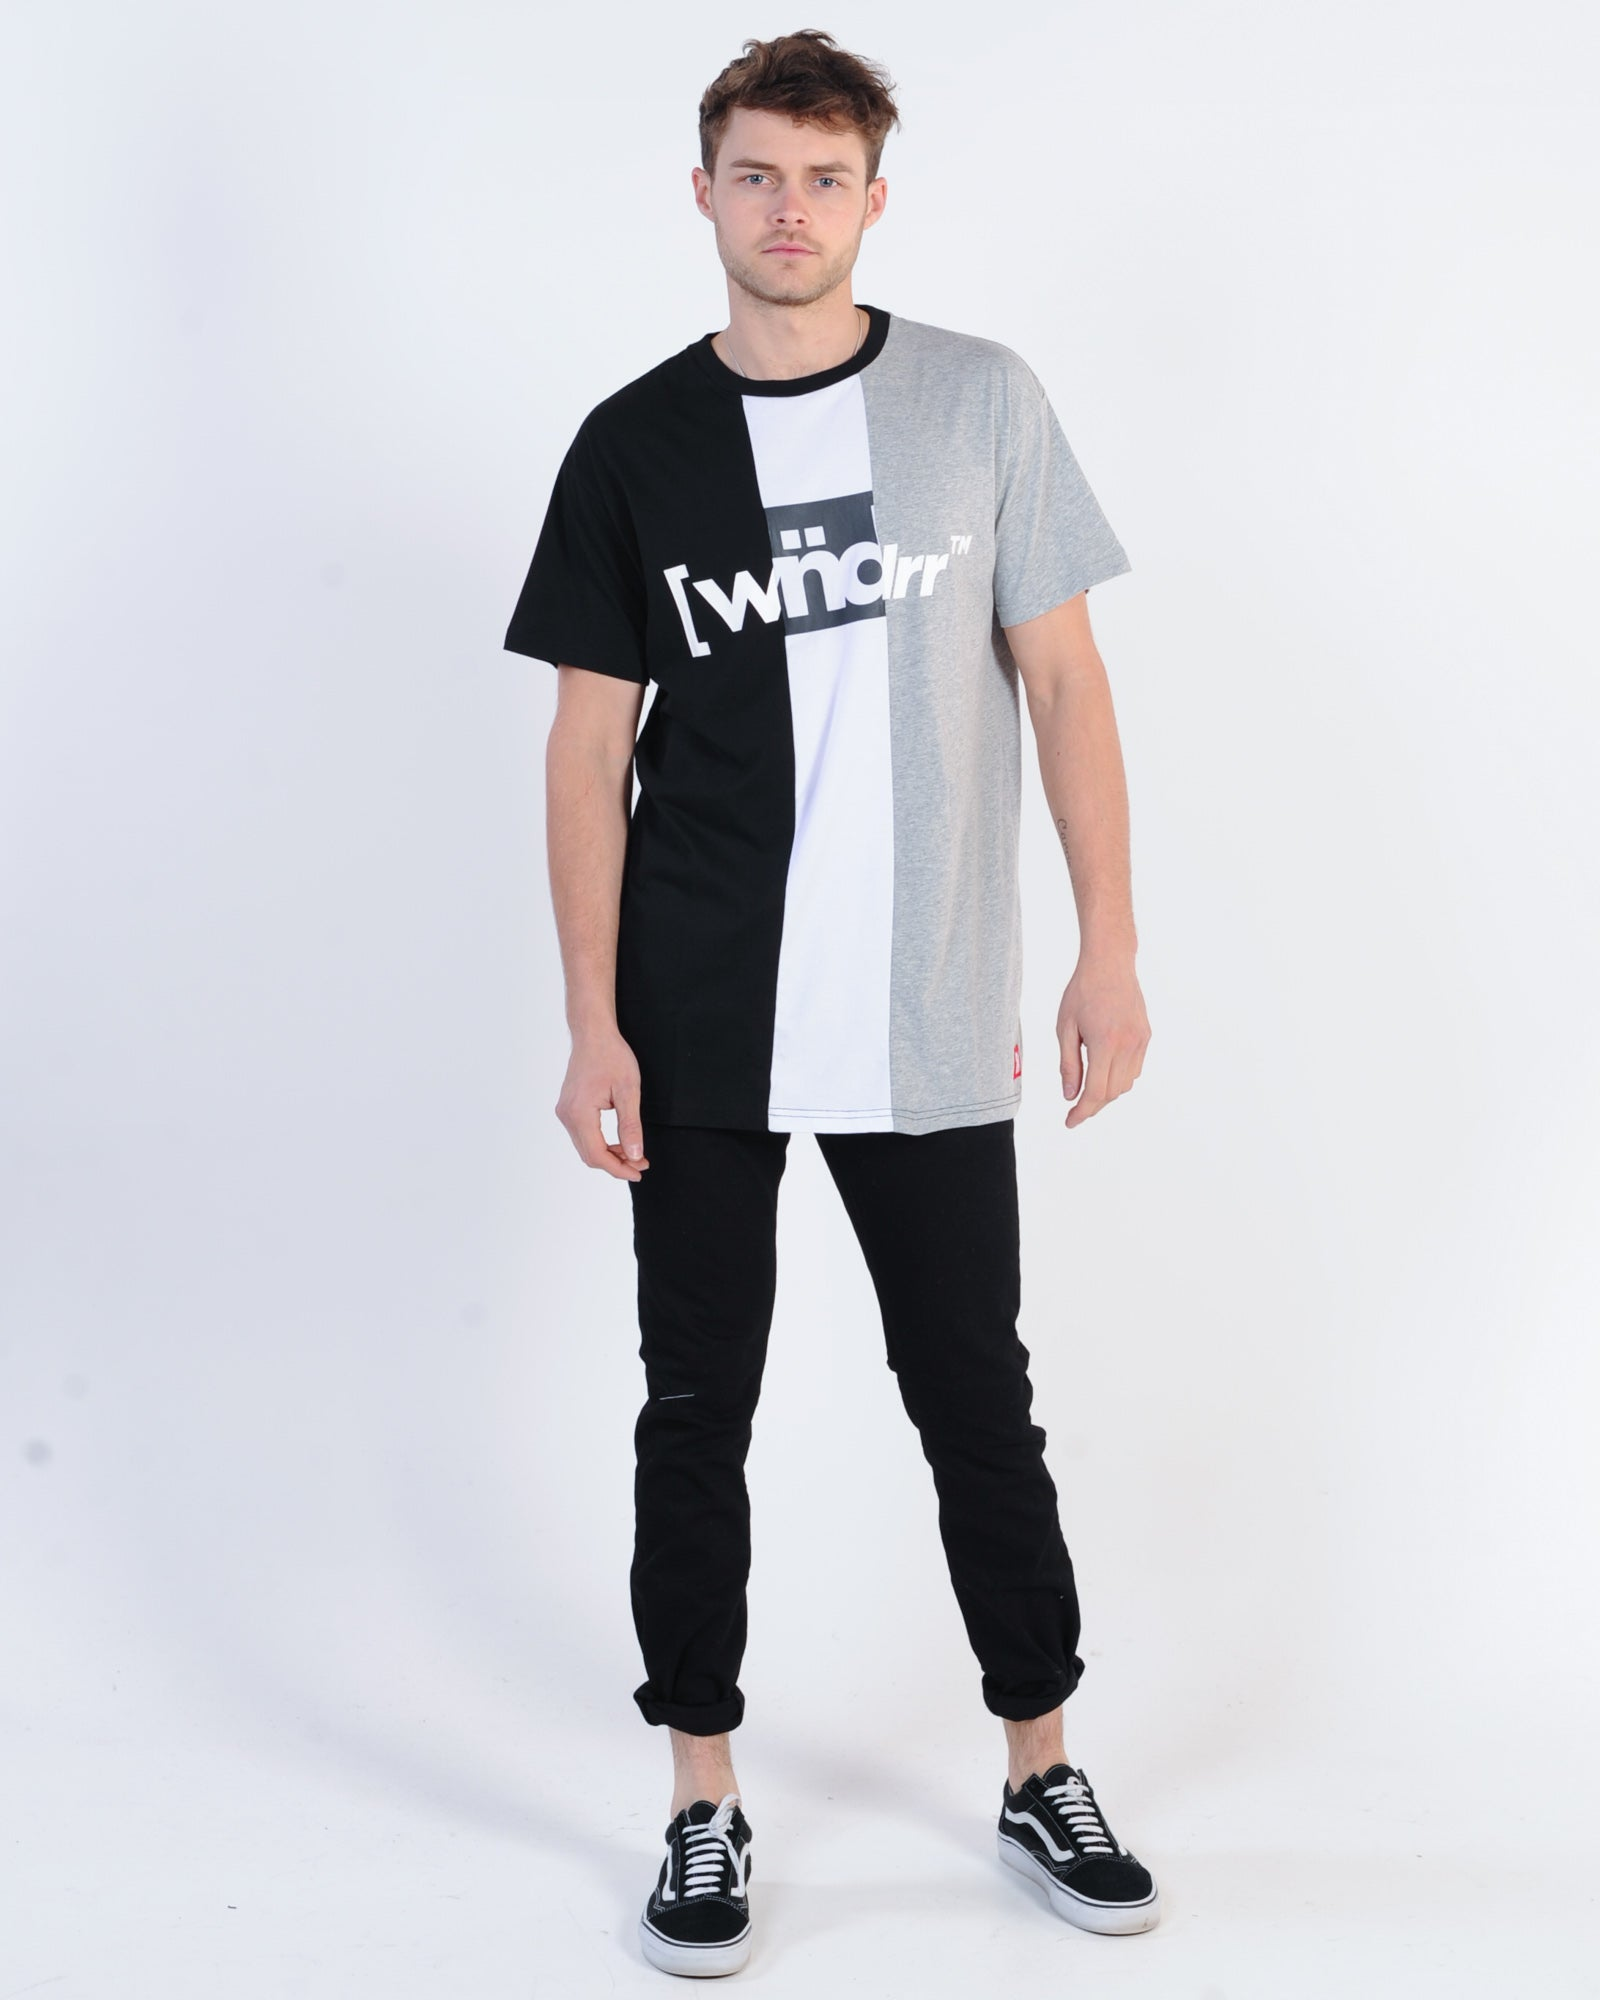 Wndrr 3 Peat Vert Panel Tee - Black/White/Grey